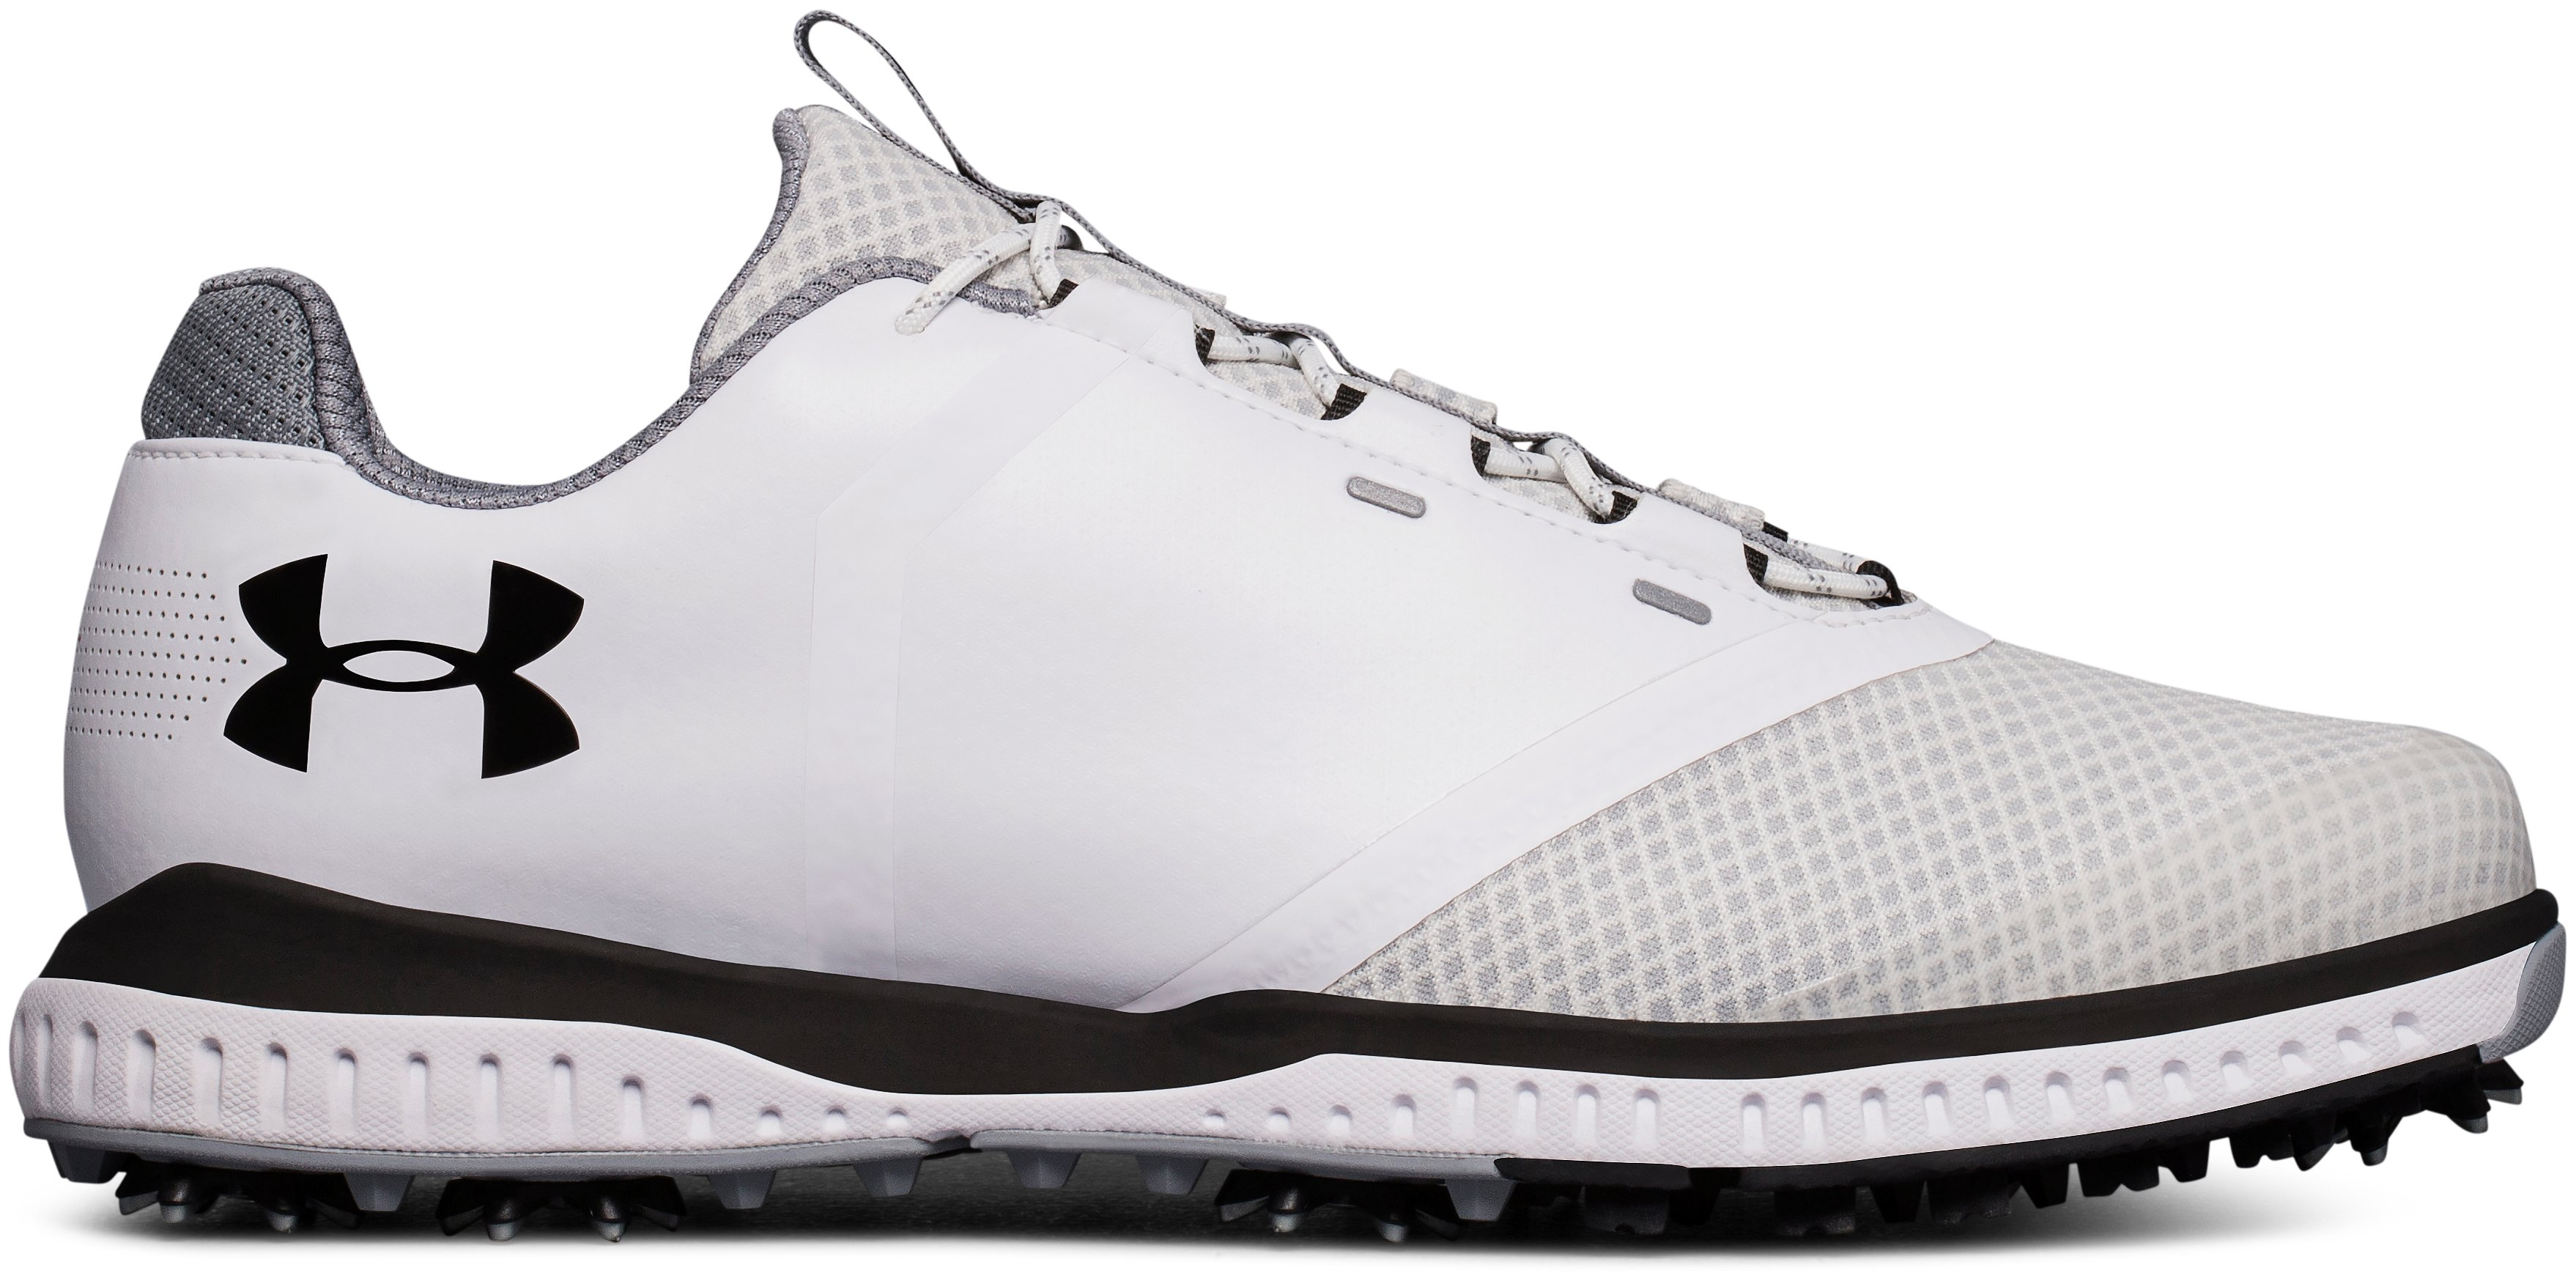 Men's UA Fade RST Golf Shoes, White